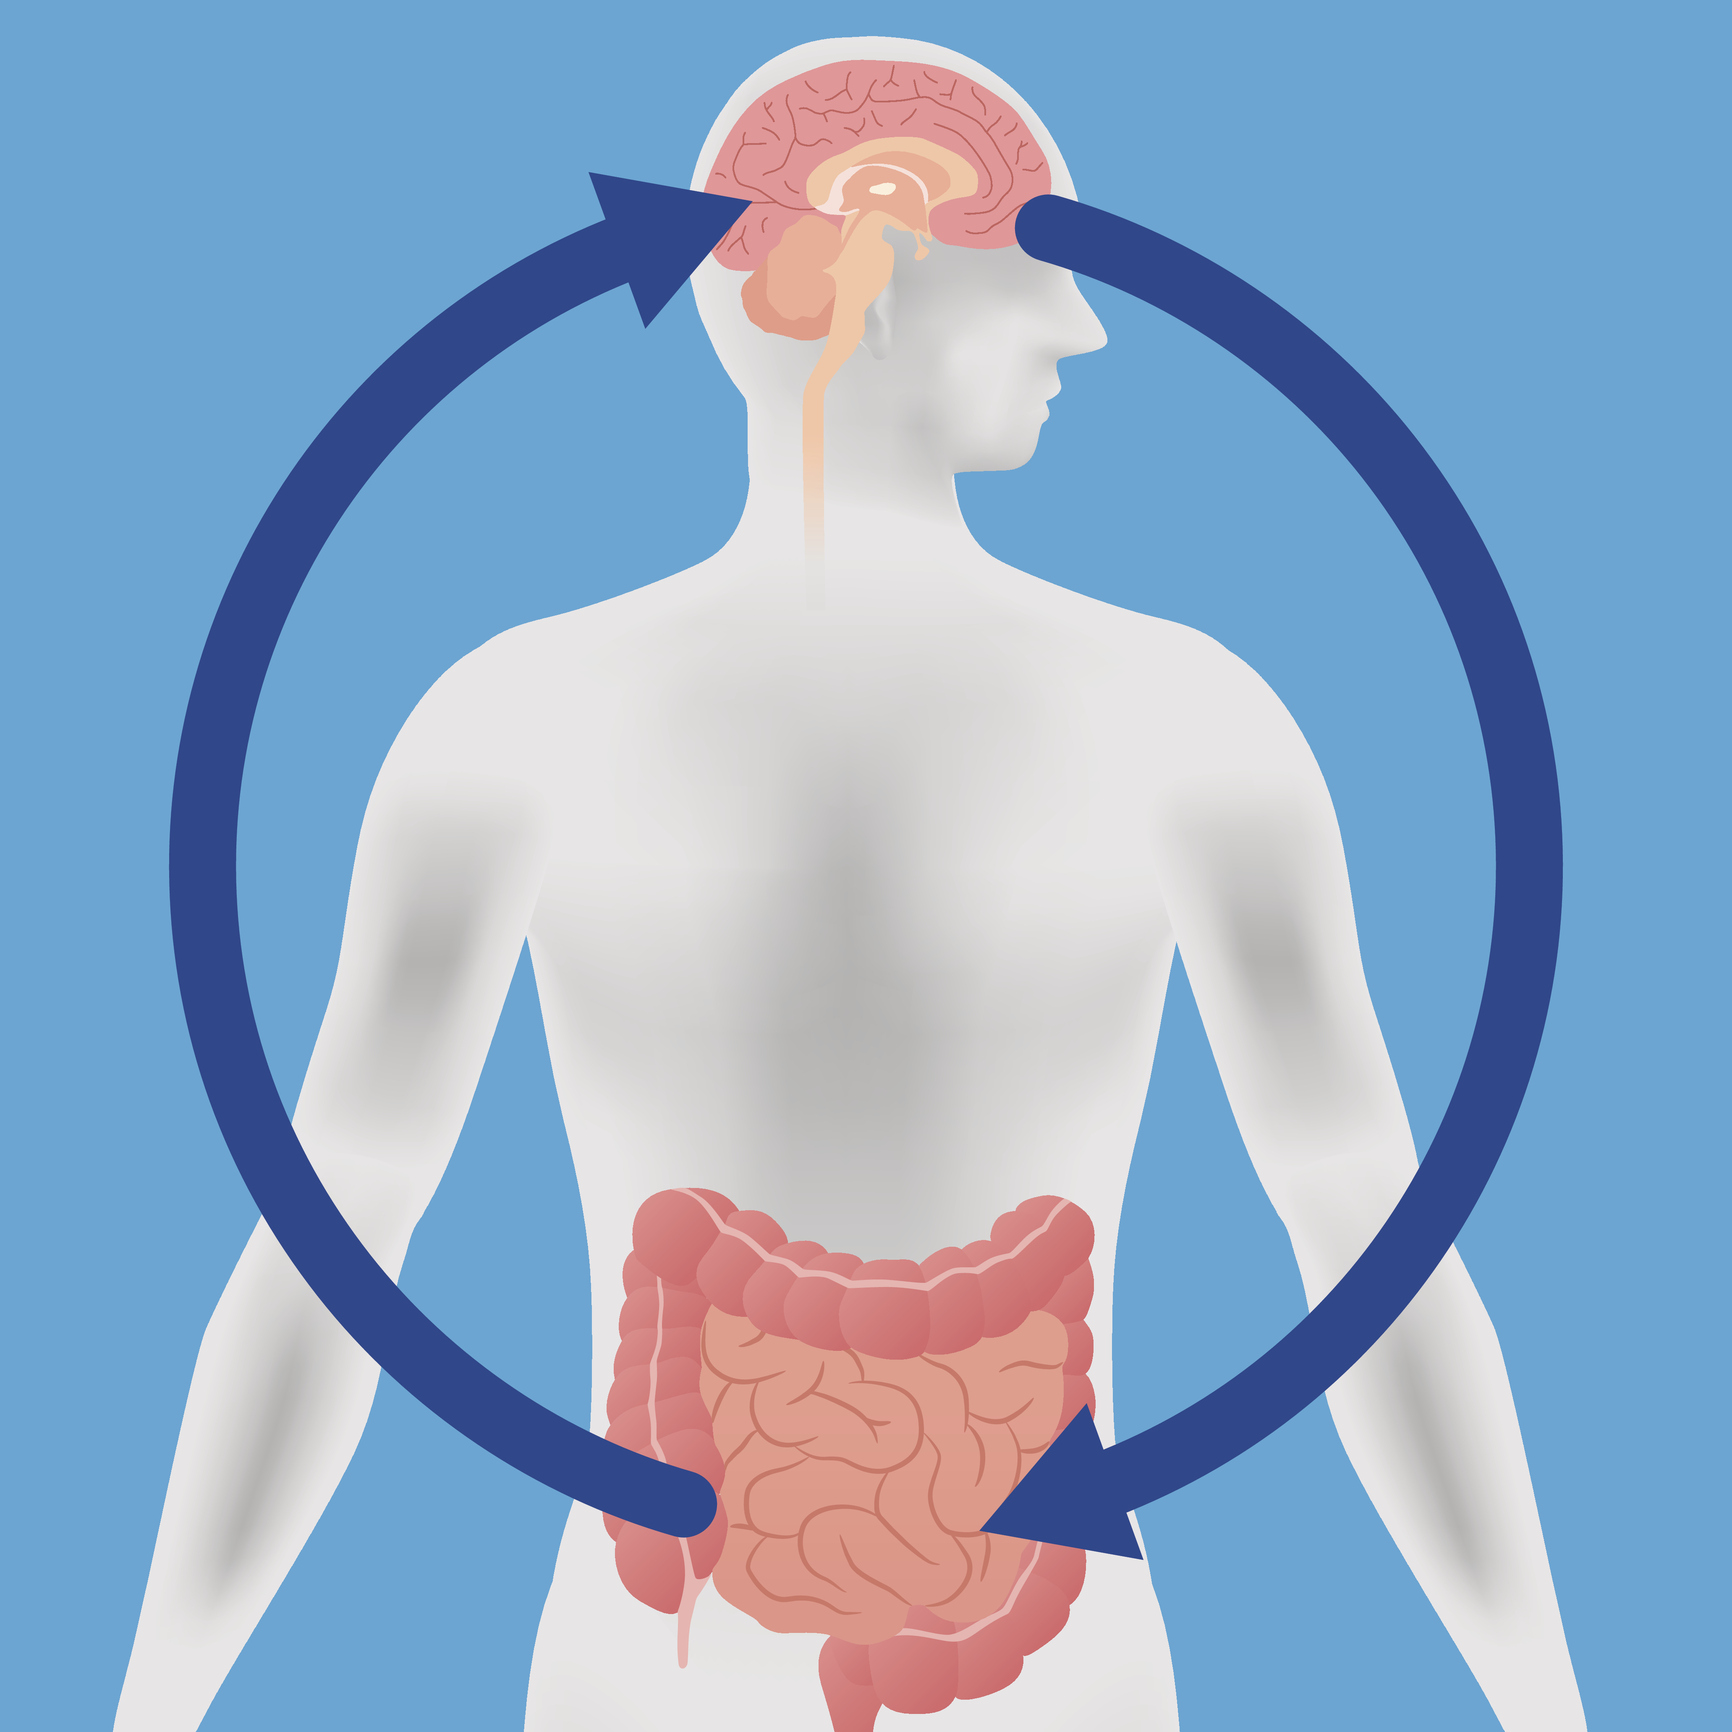 Obvious change in wart or mole clipart free stock Can probiotics help treat depression and anxiety? - Harvard ... free stock